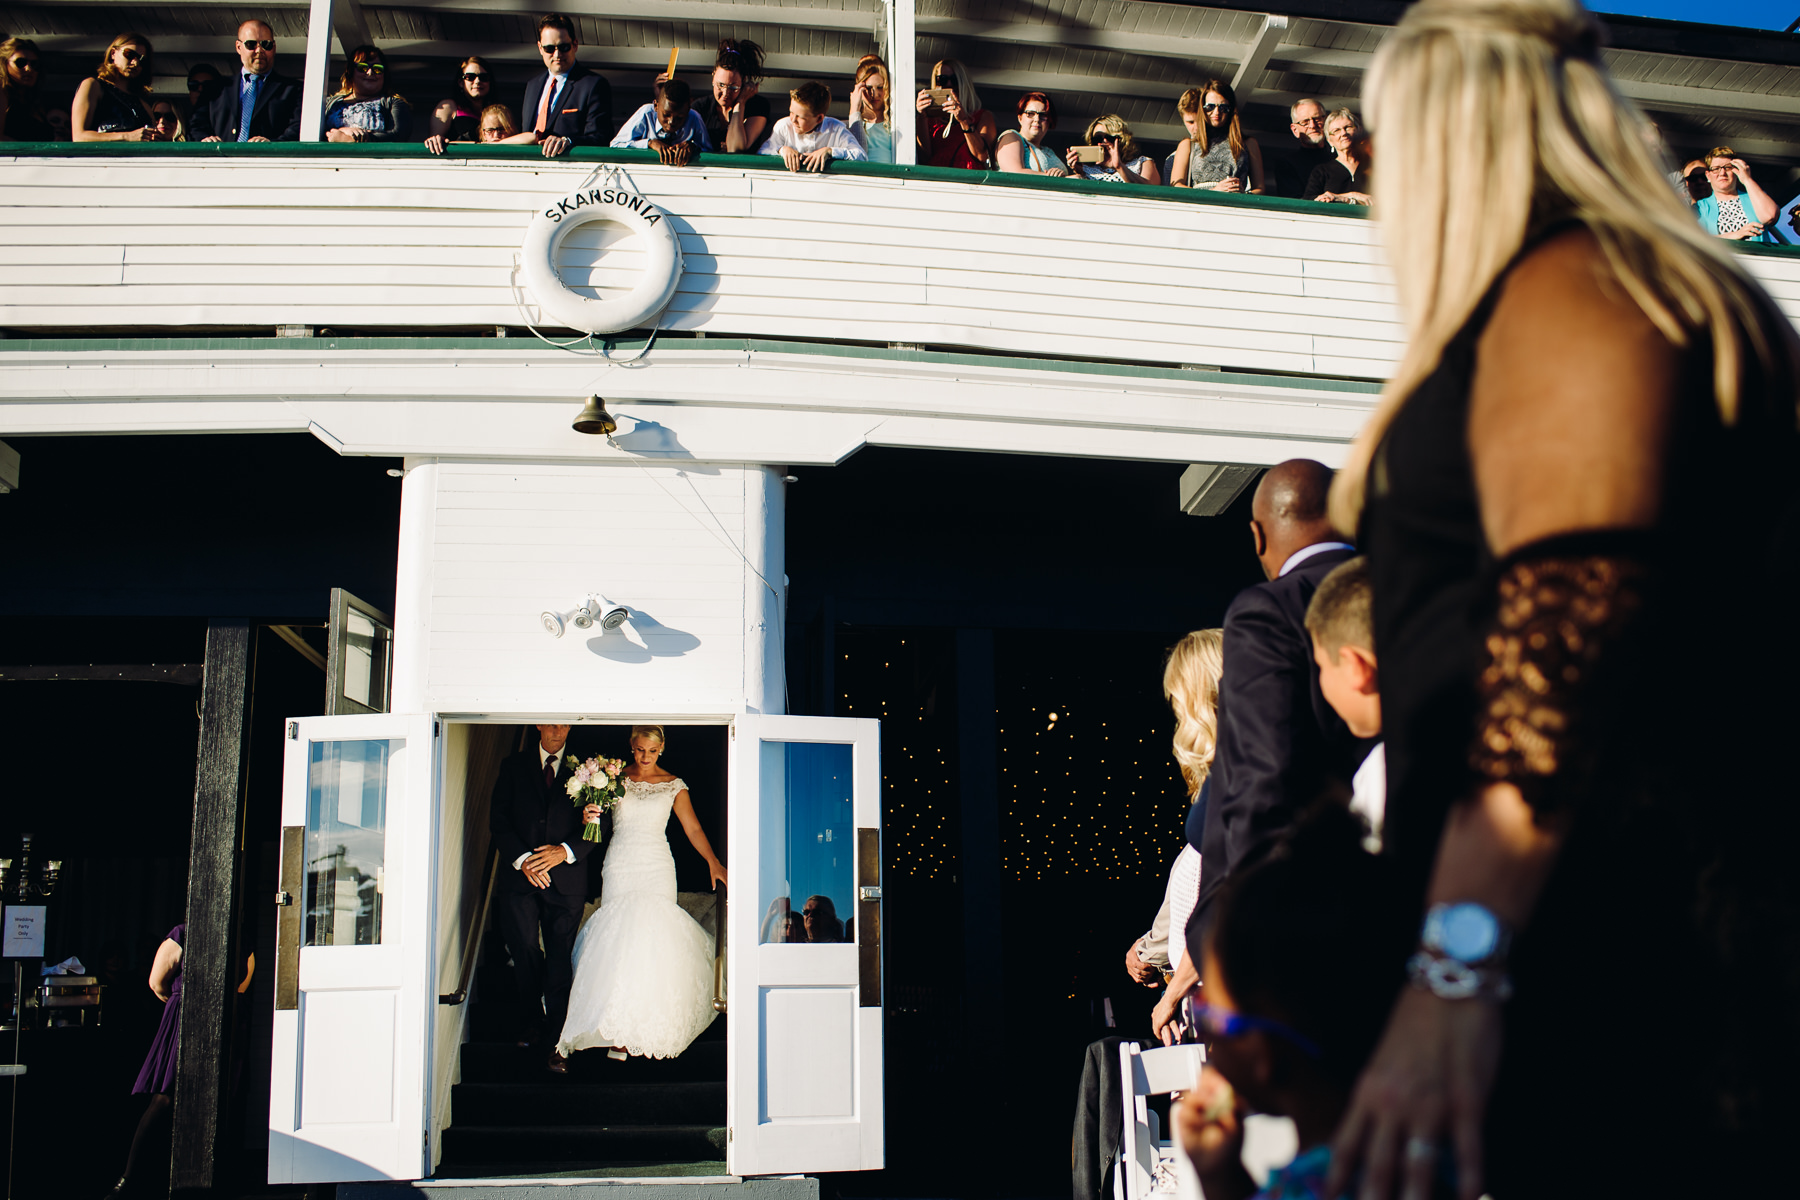 mv skansonia wedding ceremony